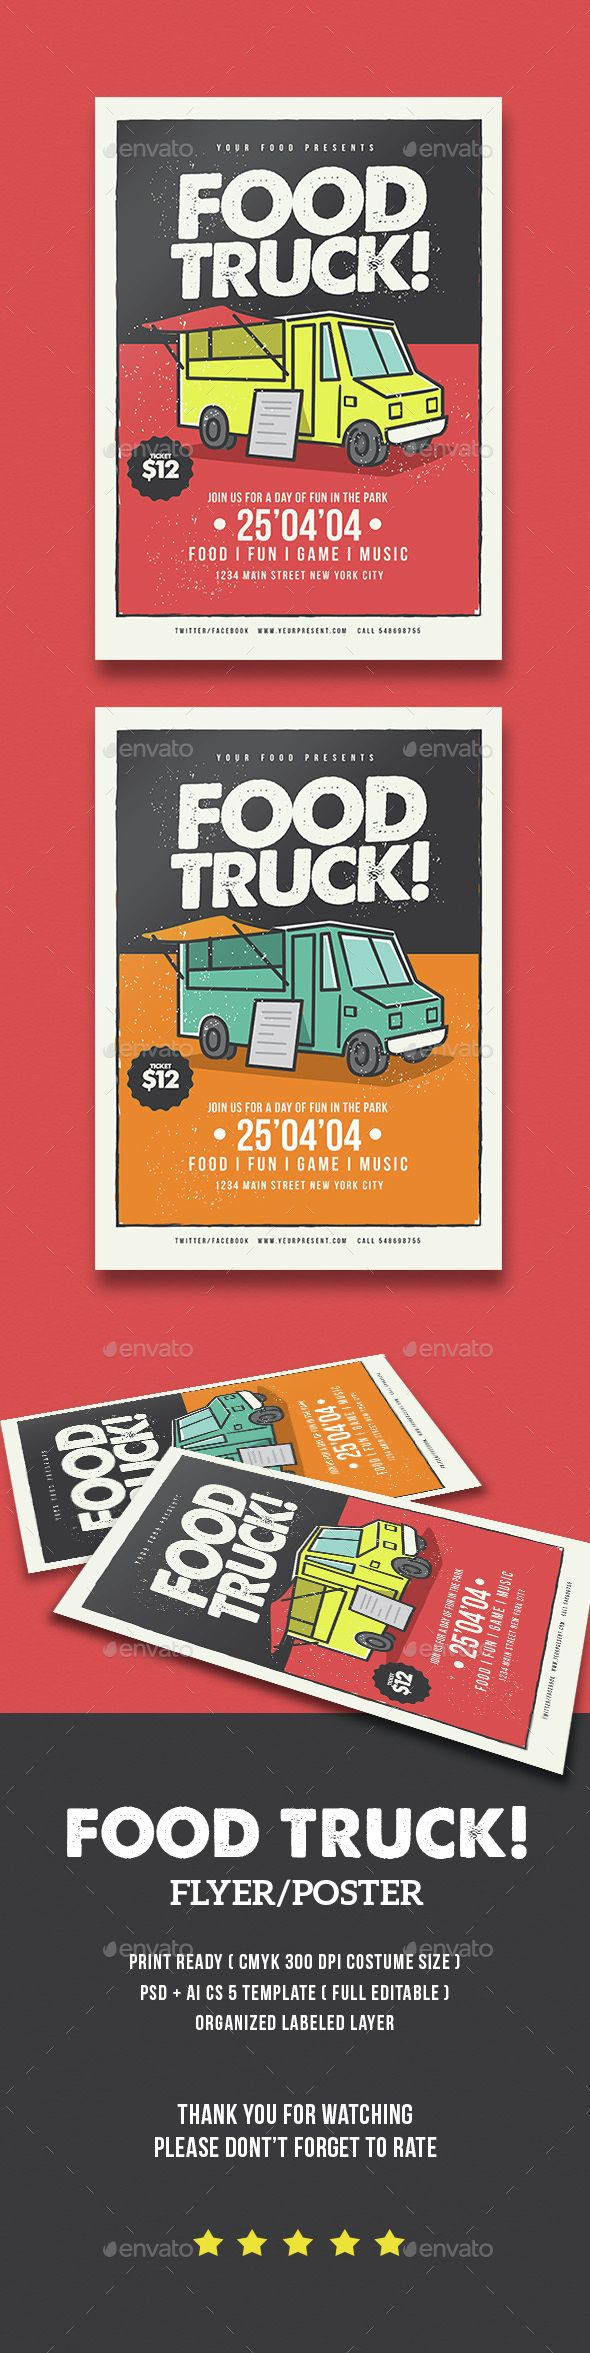 Poster design with a lot of text - Food Truck Flyer